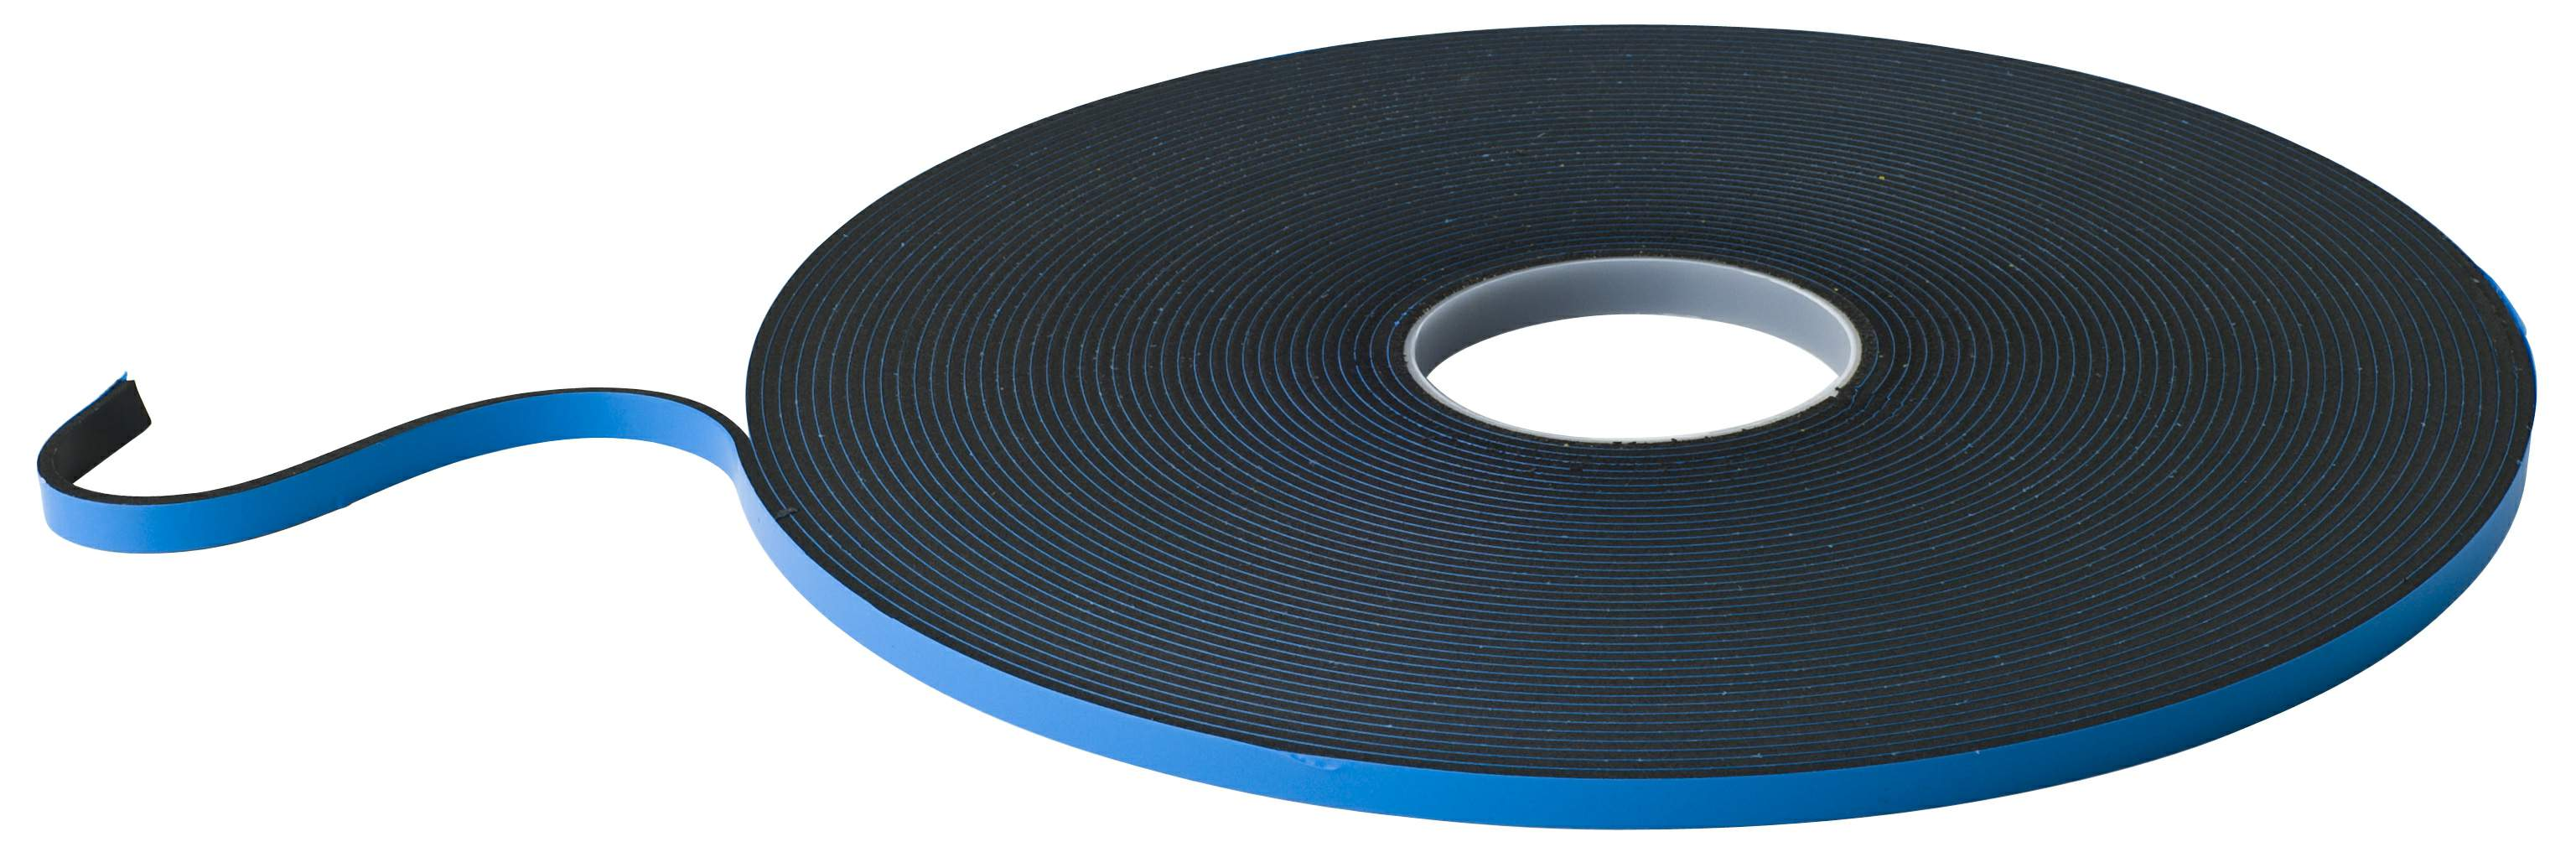 Thumbnail - Foam Tape D/S Structural 6.4mm X 9mm X 15.2M